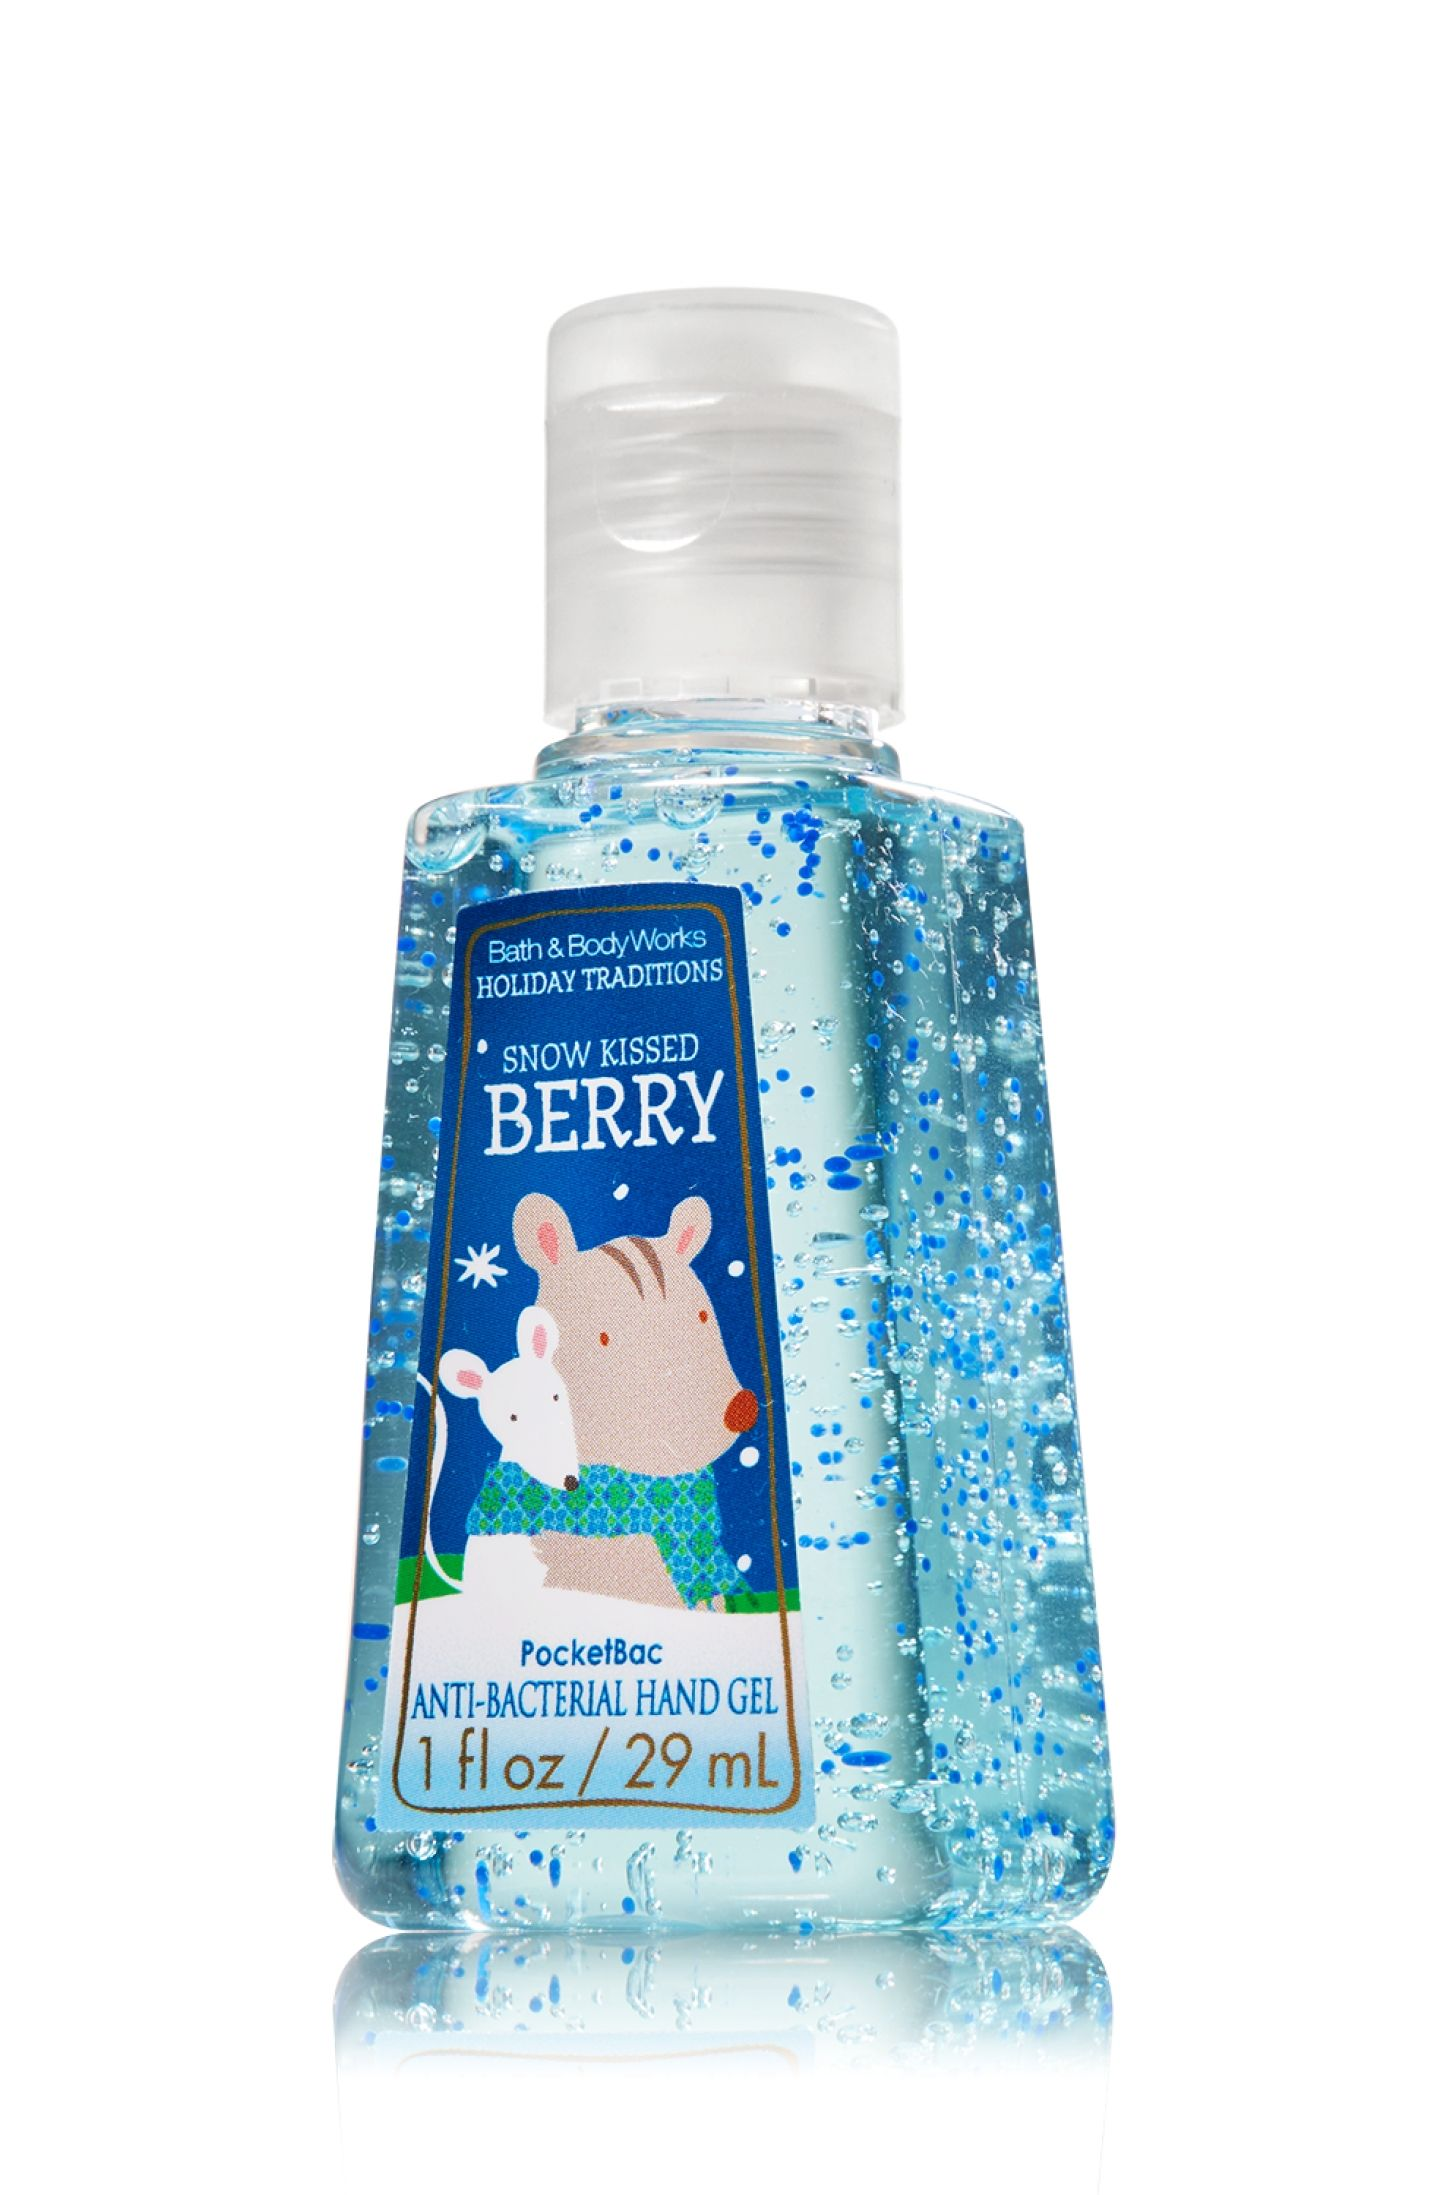 Snow Kissed Berry Pocketbac Sanitizing Hand Gel Soap Sanitizer